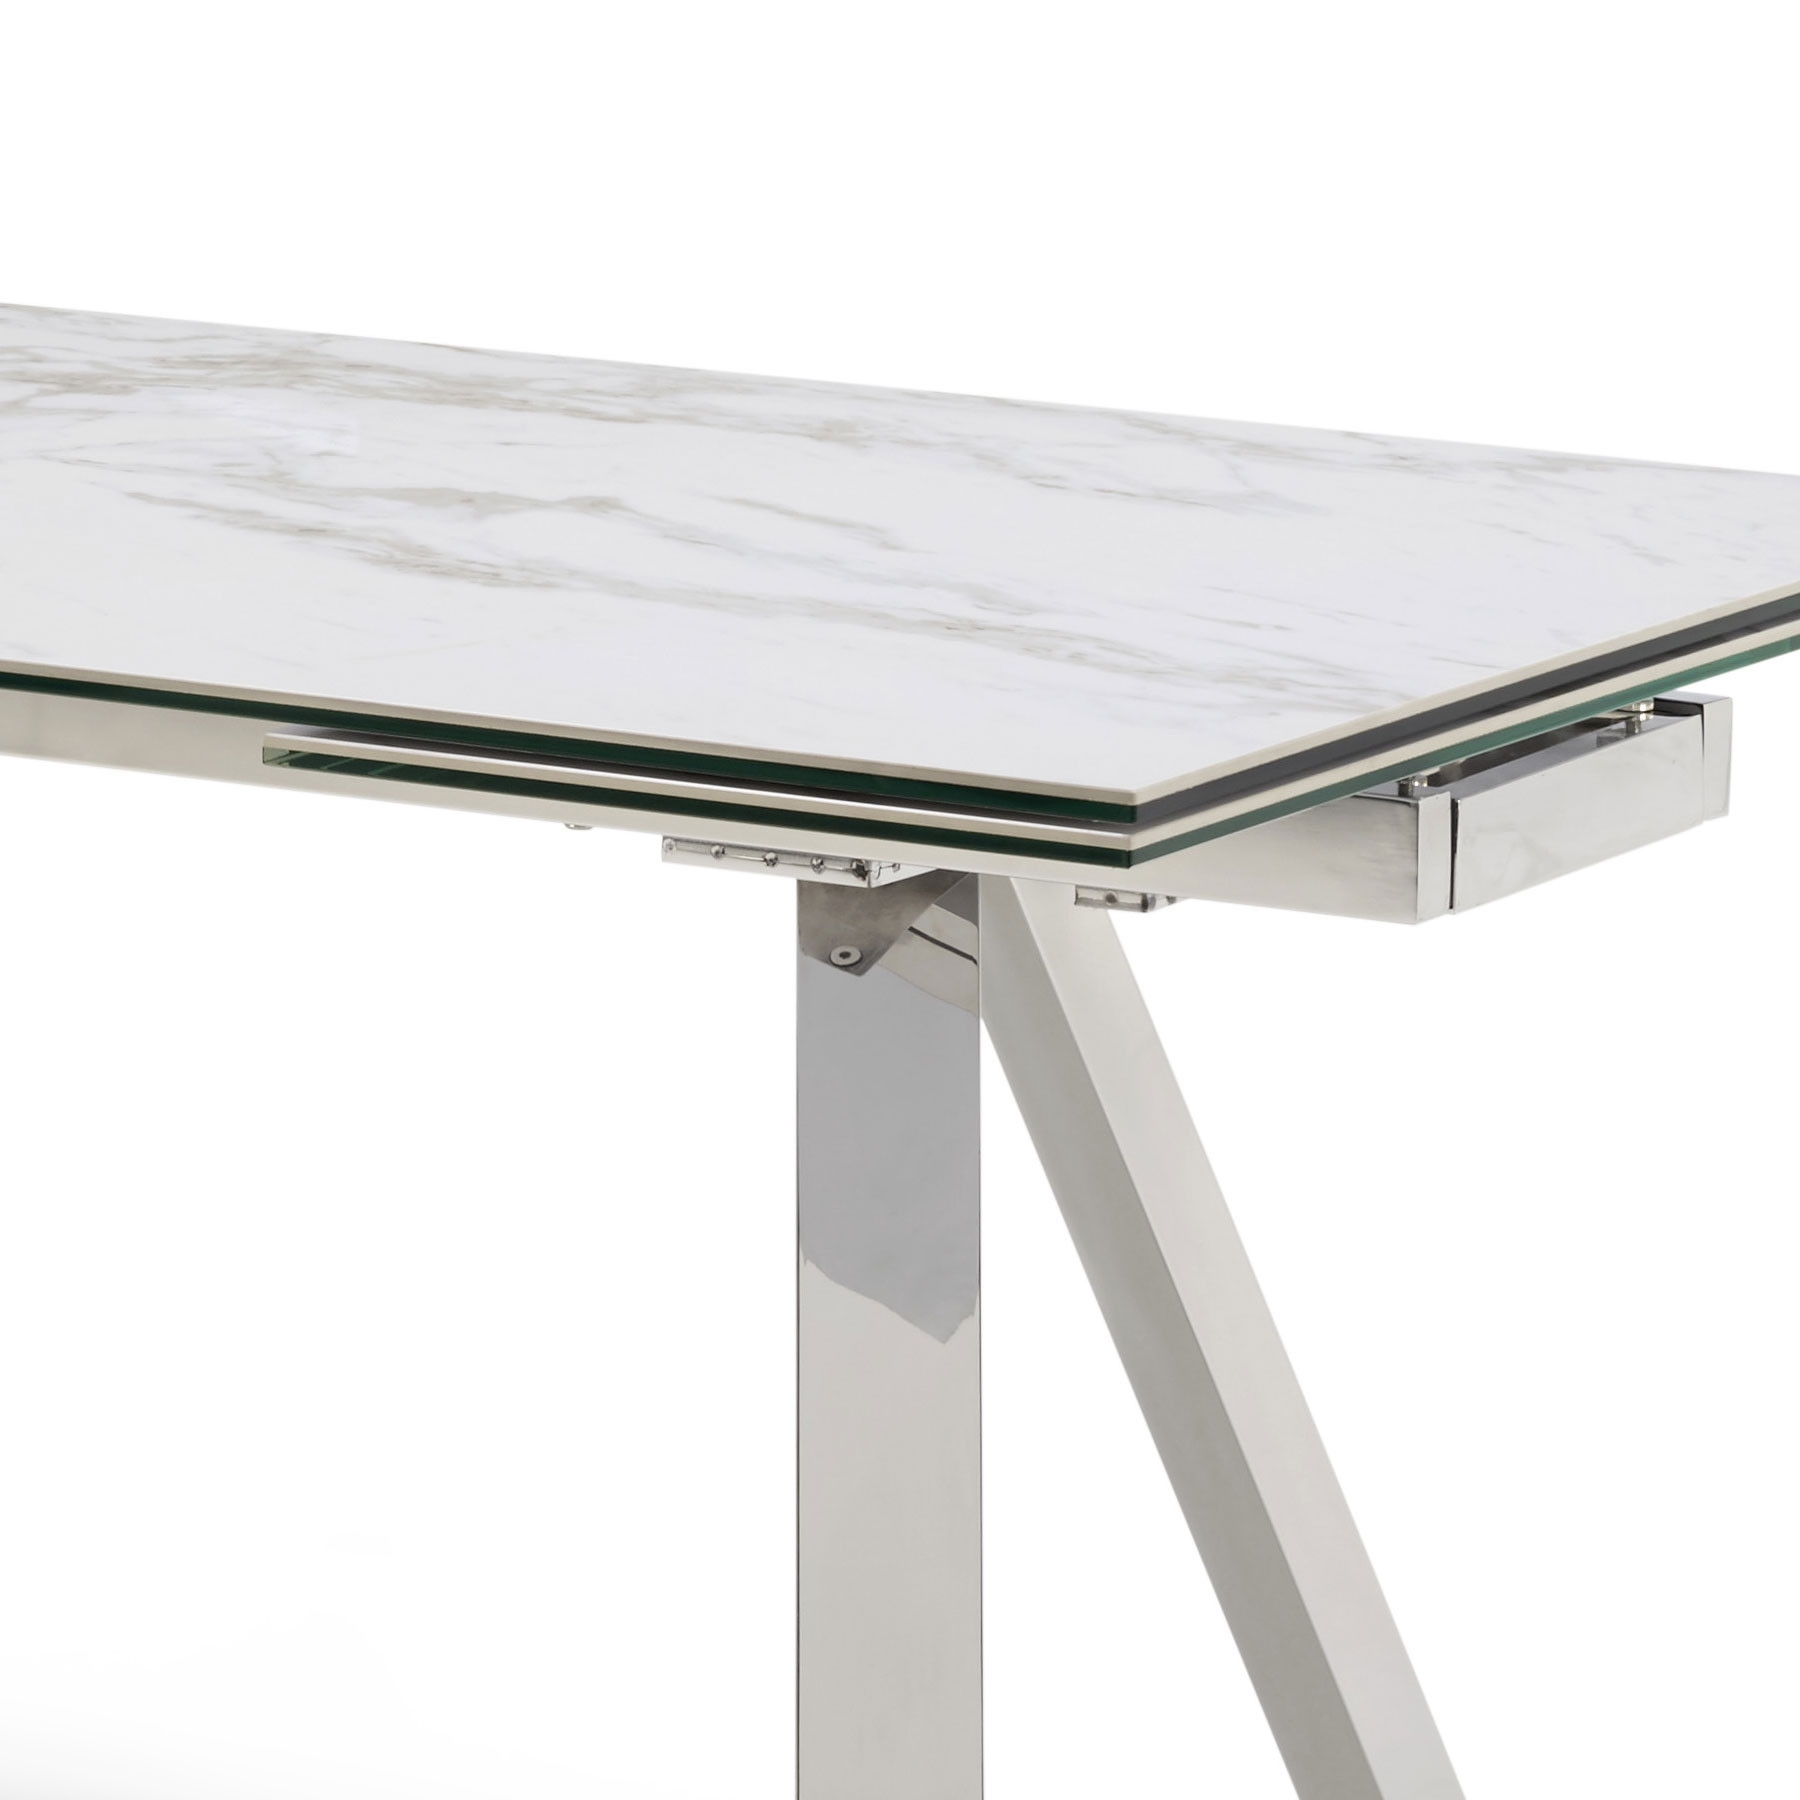 Most Popular Extending Marble Dining Tables Pertaining To Ravenna Ceramic Marble Extending Dining Table & 6 Camber Grey Chairs (View 11 of 25)